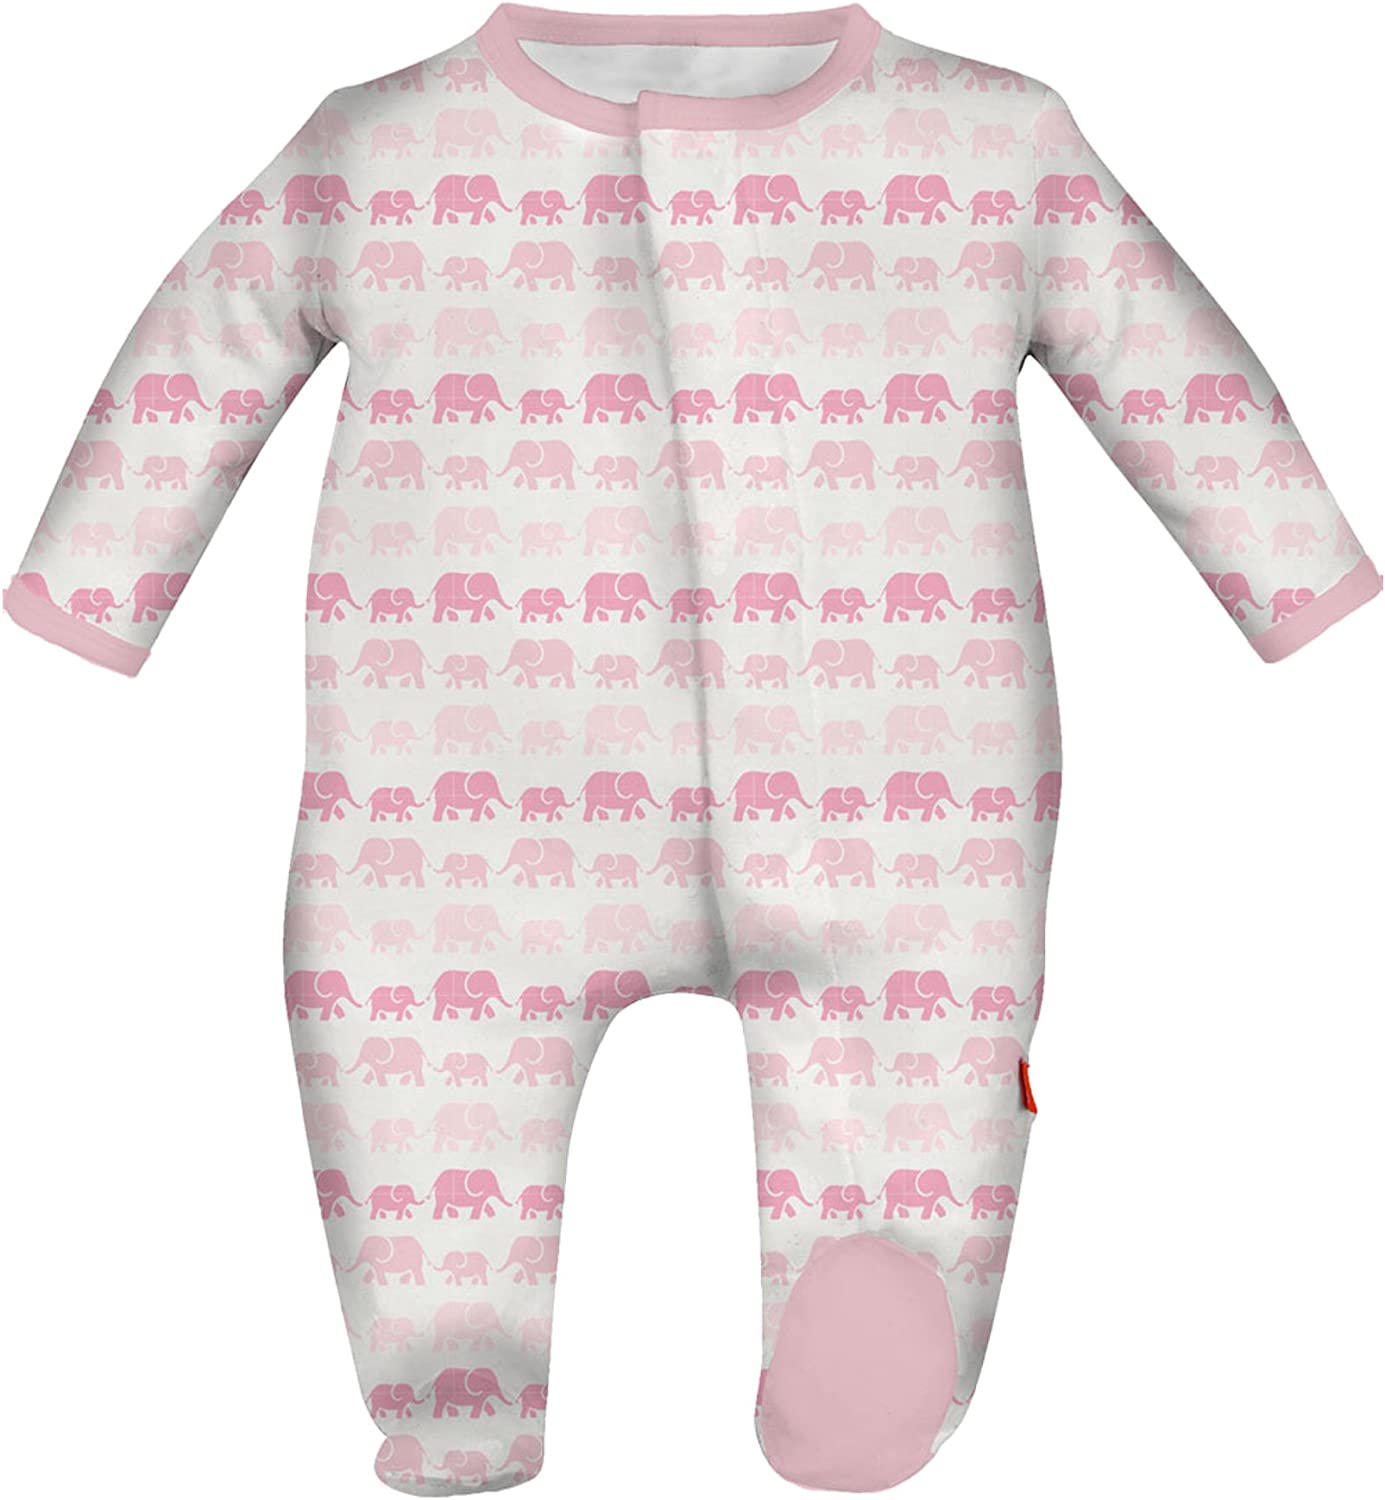 Magnificent Baby Baby Girls' Infant Magnetic Footie